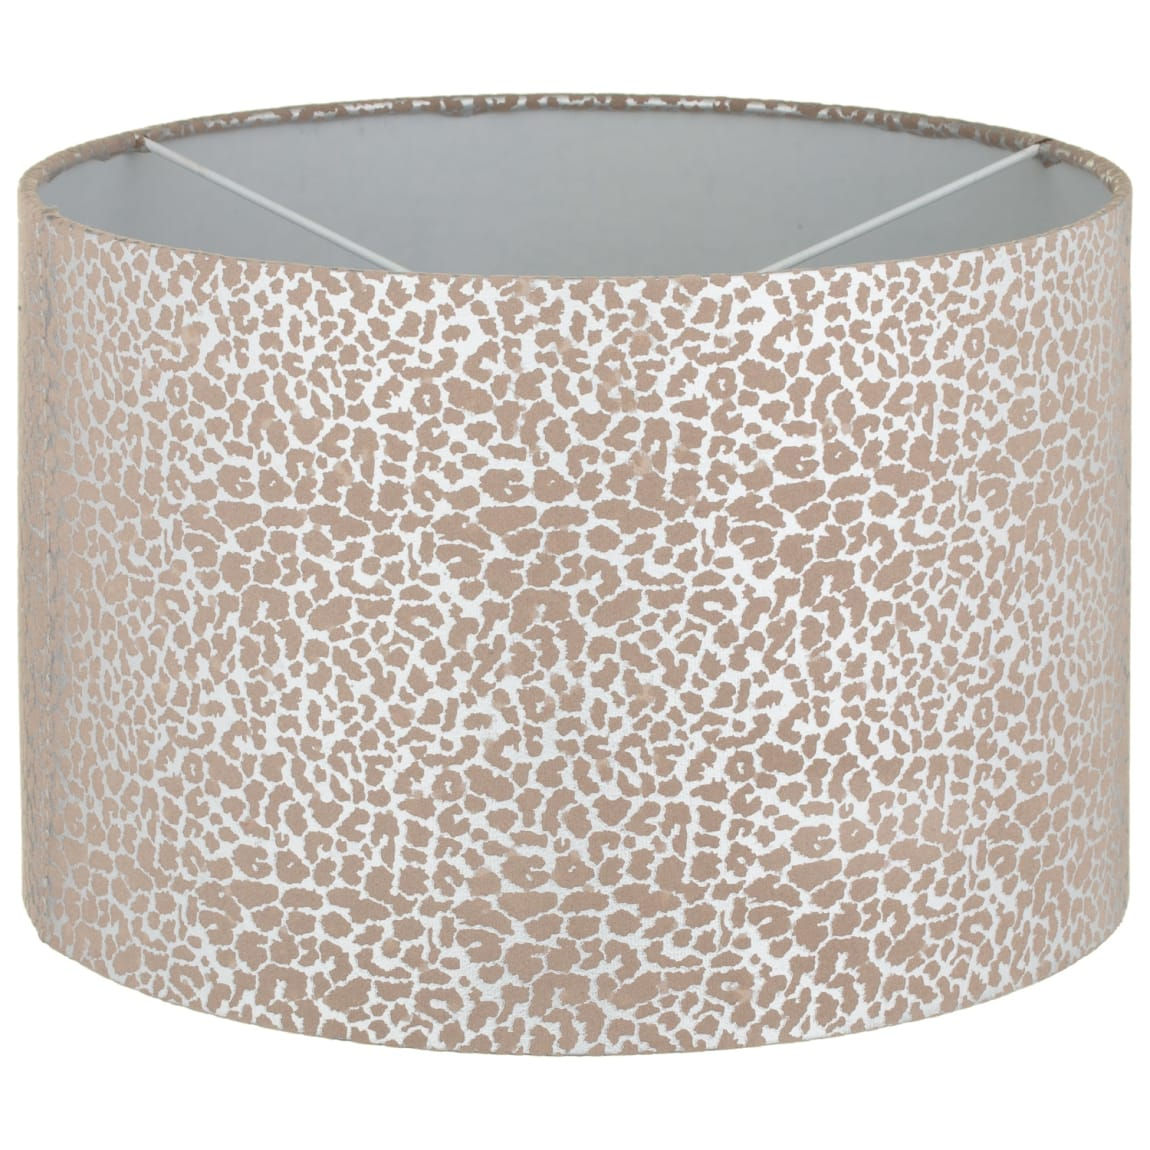 Leopard Print Metallic Light Shade